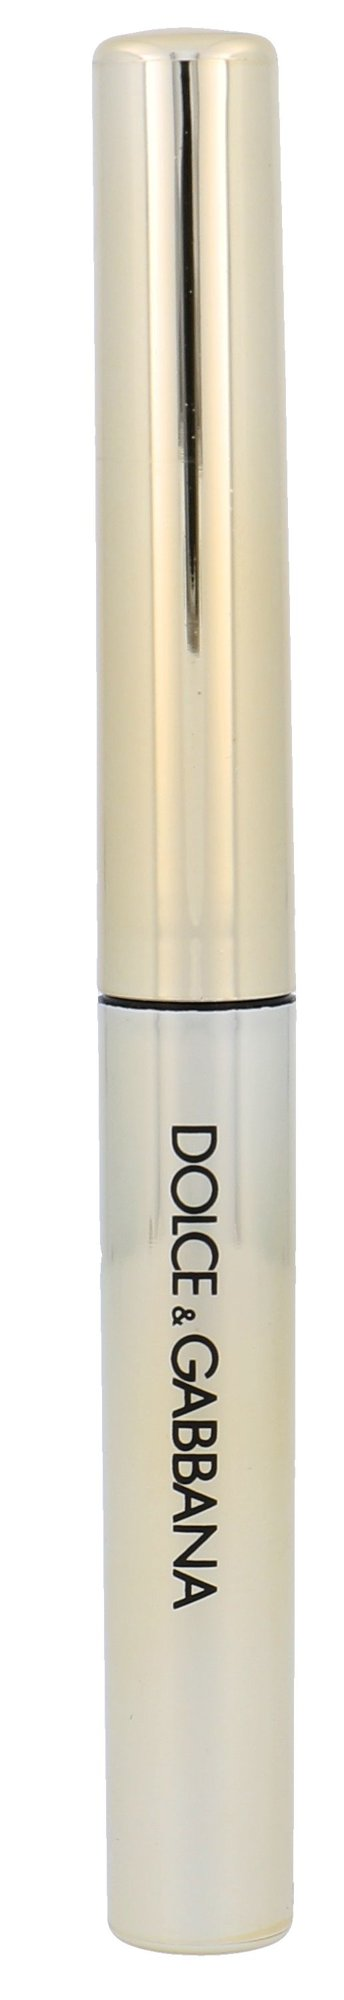 Dolce&Gabbana The Concealer Cosmetic 2,5ml 1